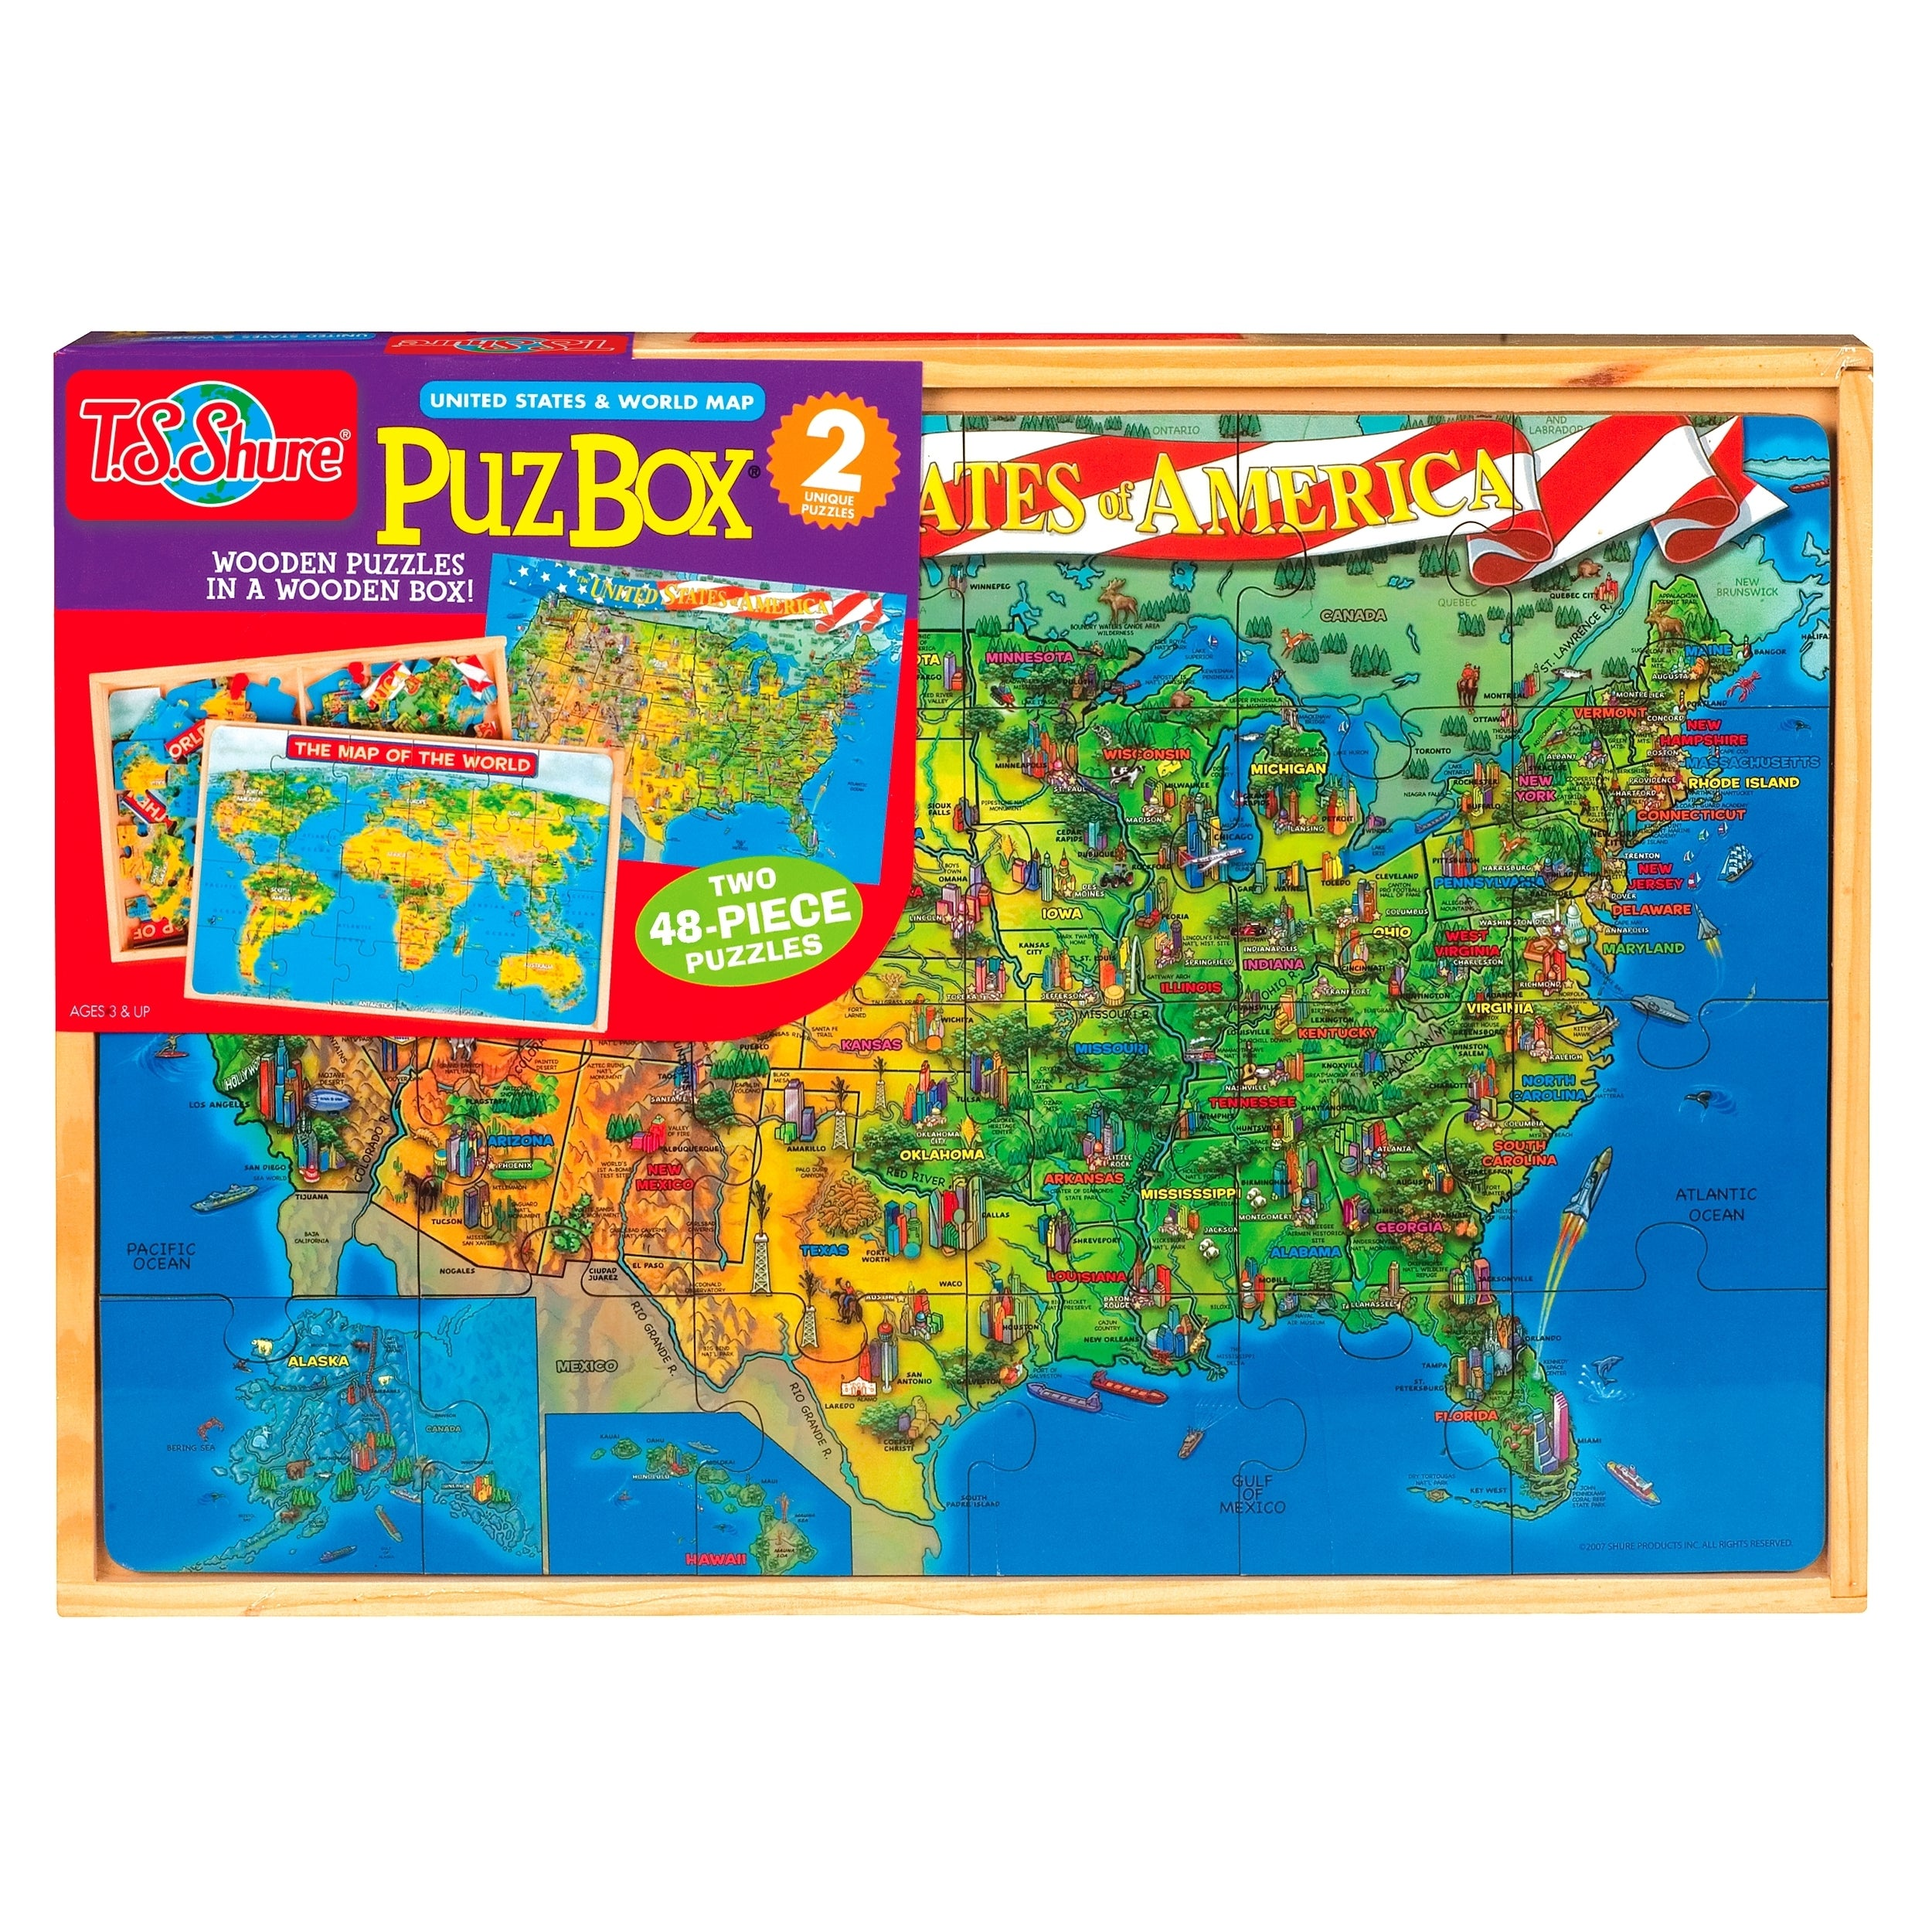 Us and world map jumbo puzzle in a wood box set free shipping on us and world map jumbo puzzle in a wood box set free shipping on orders over 45 overstock 16580871 gumiabroncs Image collections